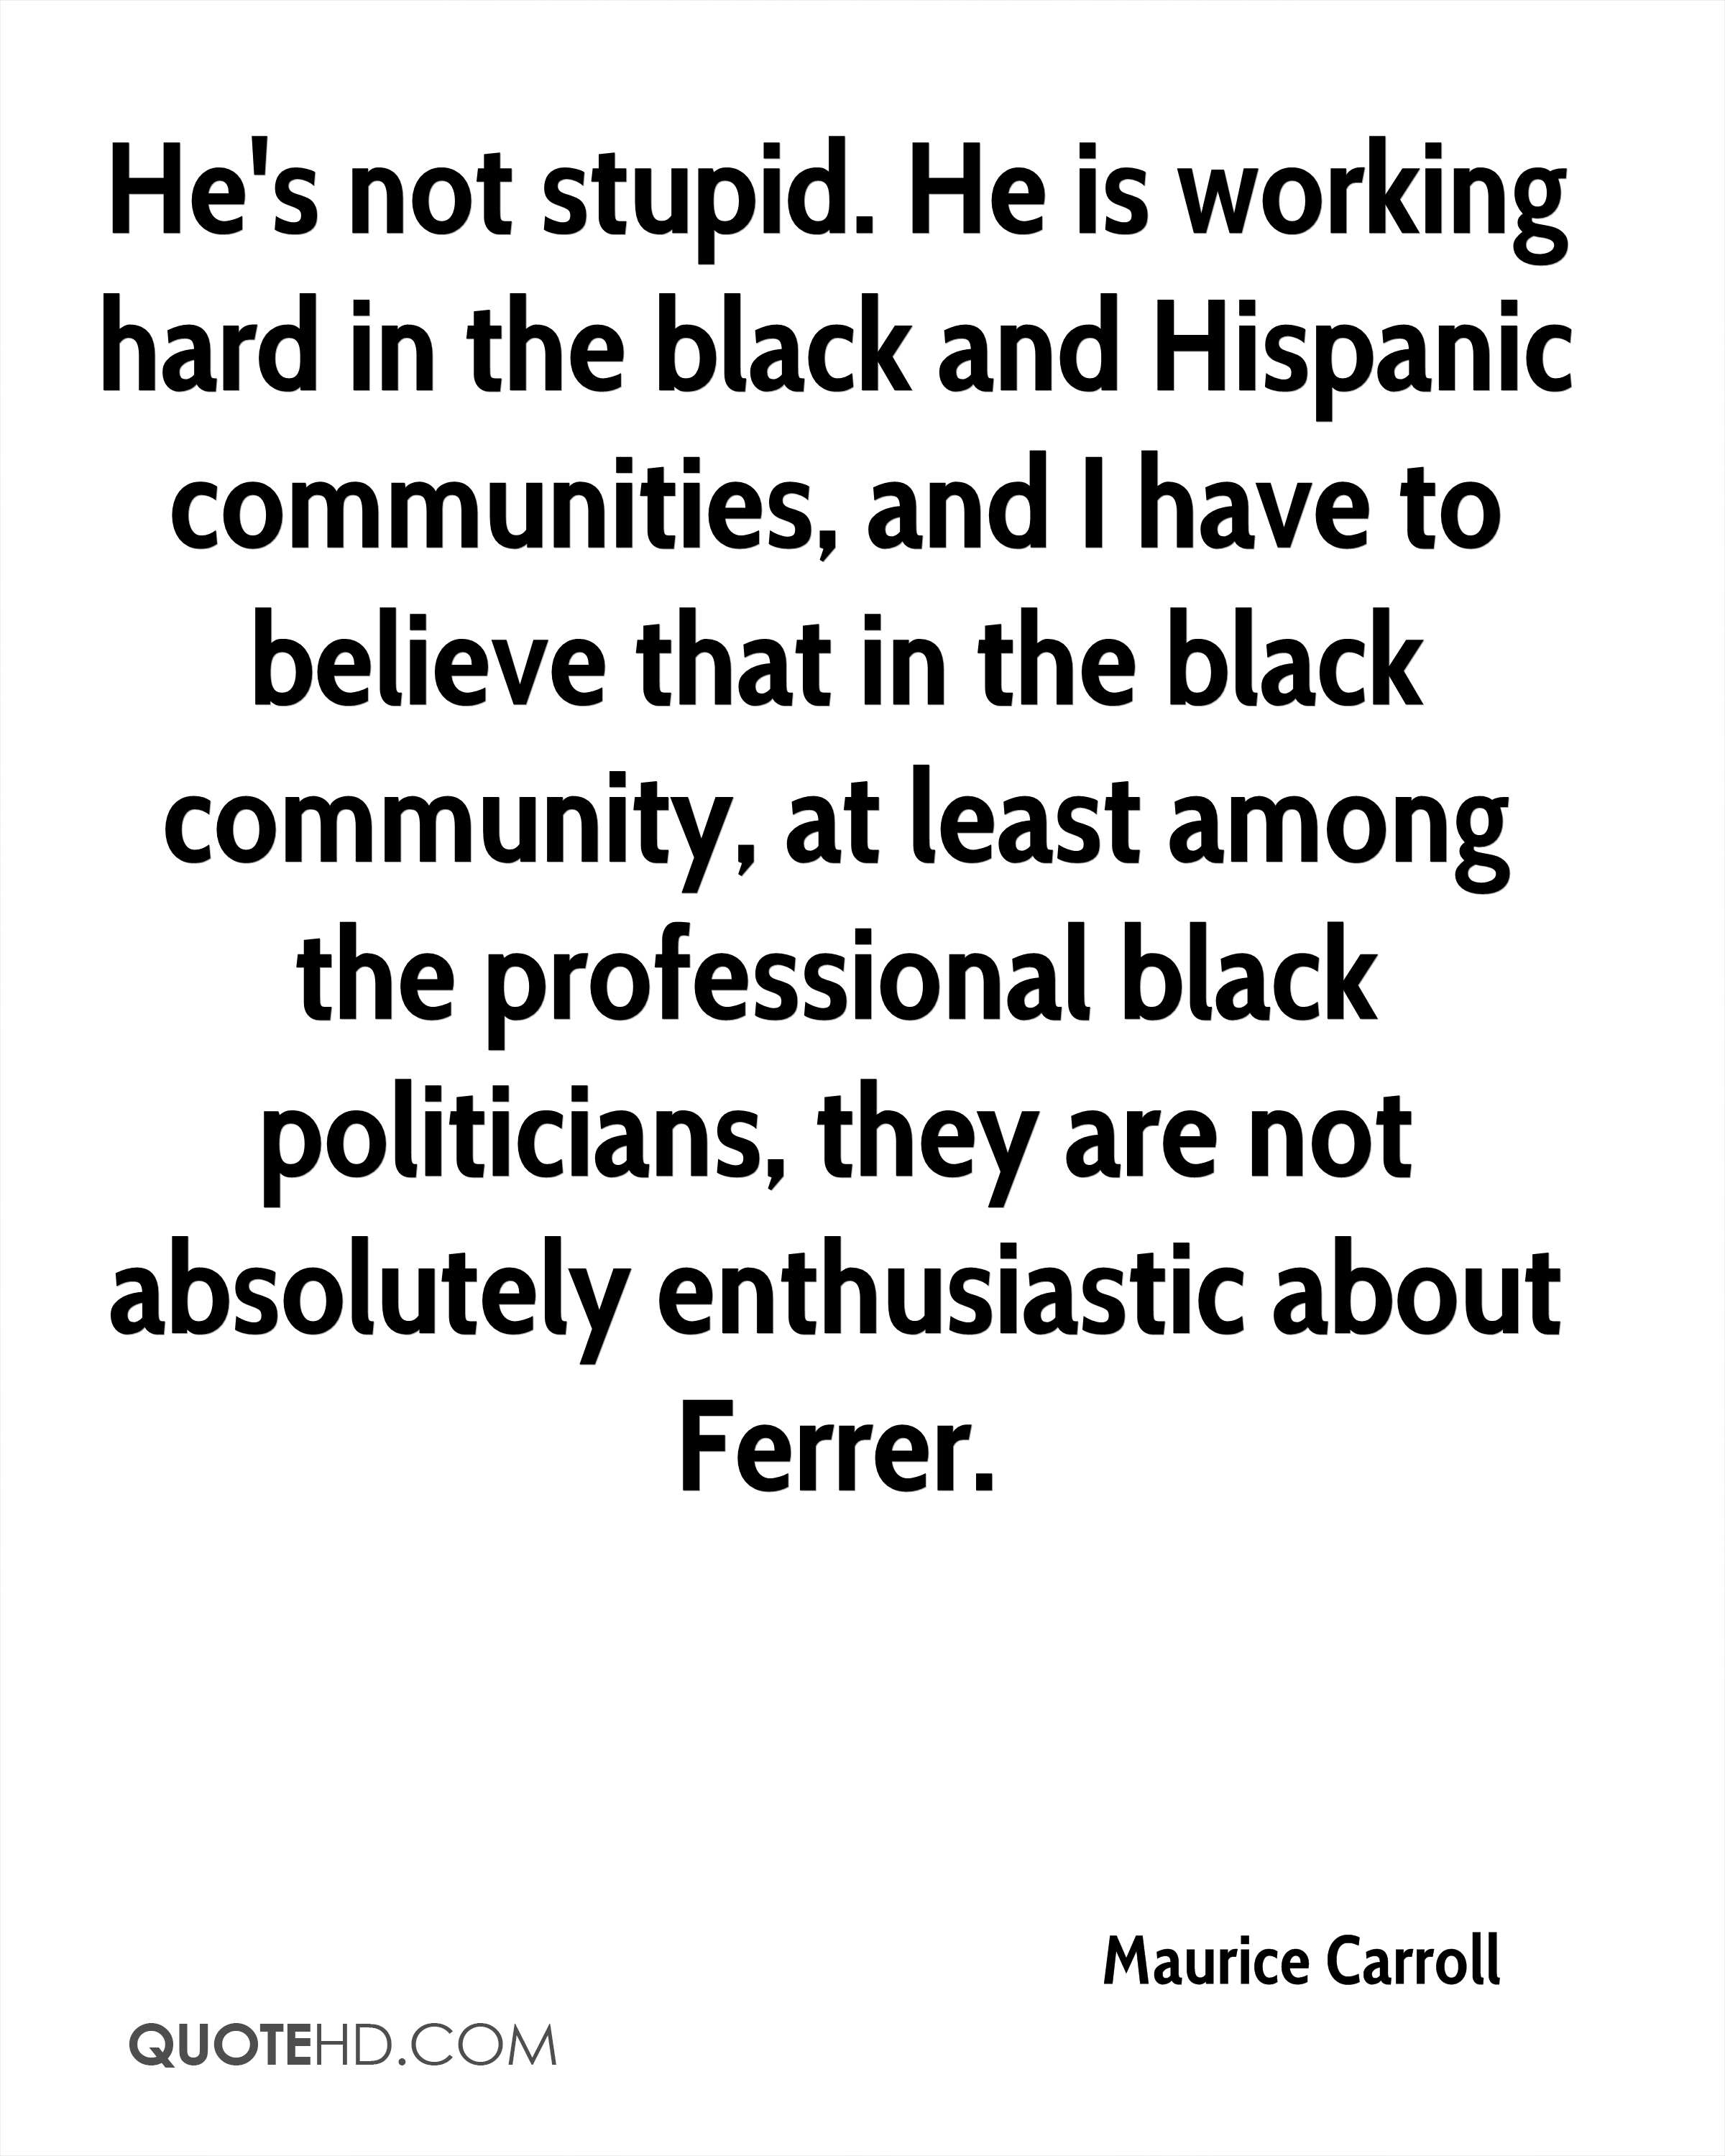 He's not stupid. He is working hard in the black and Hispanic communities, and I have to believe that in the black community, at least among the professional black politicians, they are not absolutely enthusiastic about Ferrer.